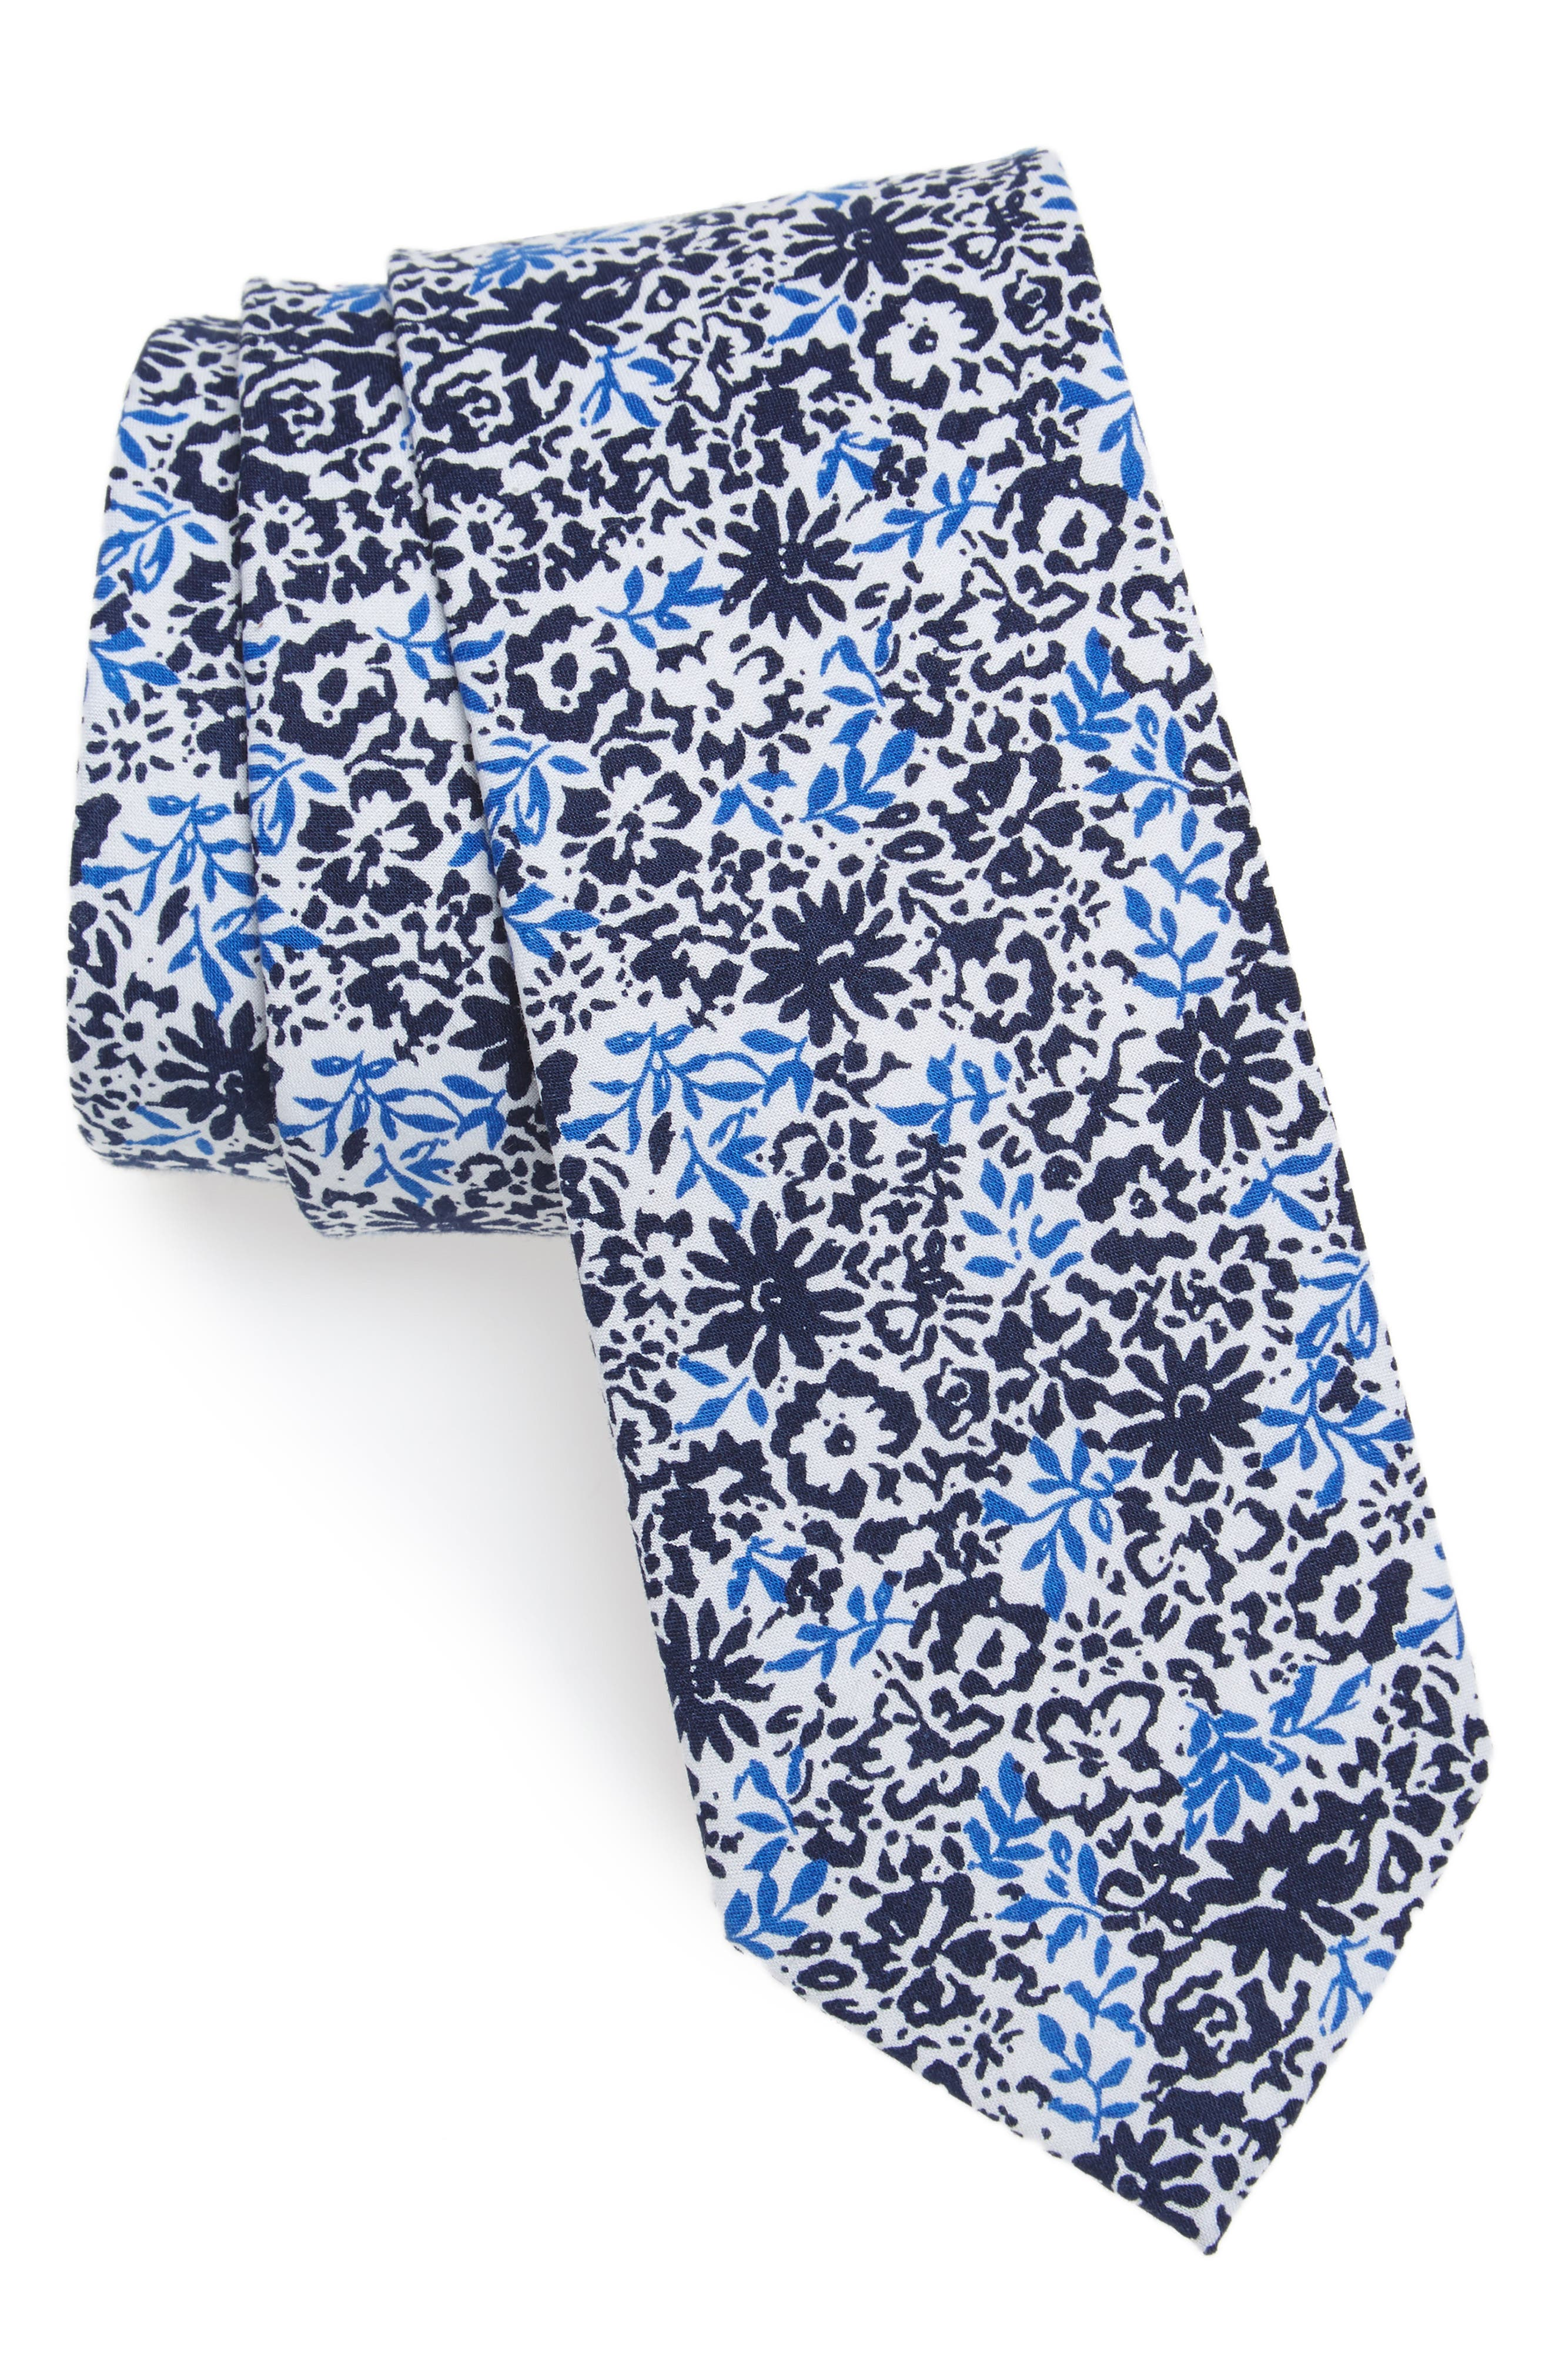 Alternate Image 1 Selected - 1901 Grace Floral Print Cotton Skinny Tie